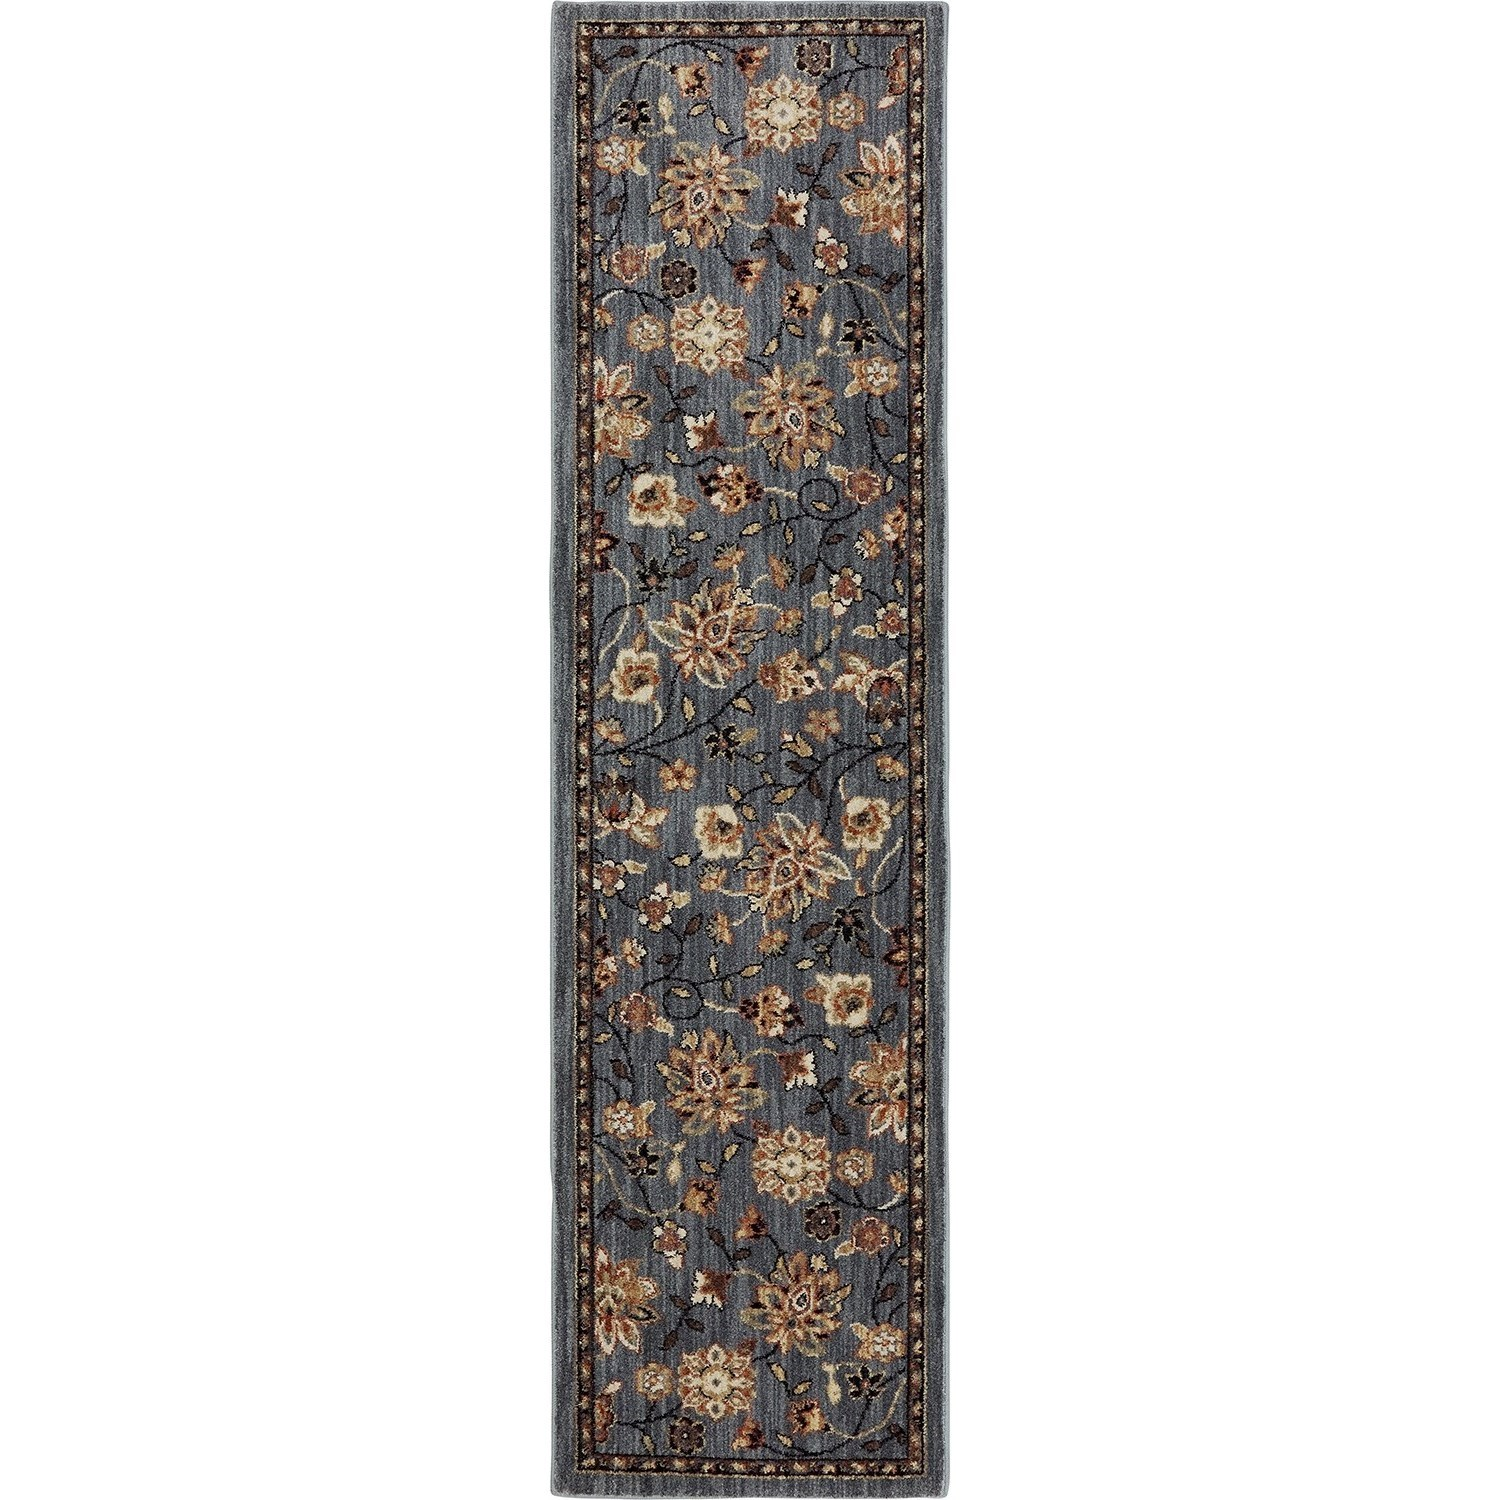 """Dryden 2' 1""""x7' 10"""" Emerson Abyss Blue Area Rug by American Rug Craftsmen at Alison Craig Home Furnishings"""